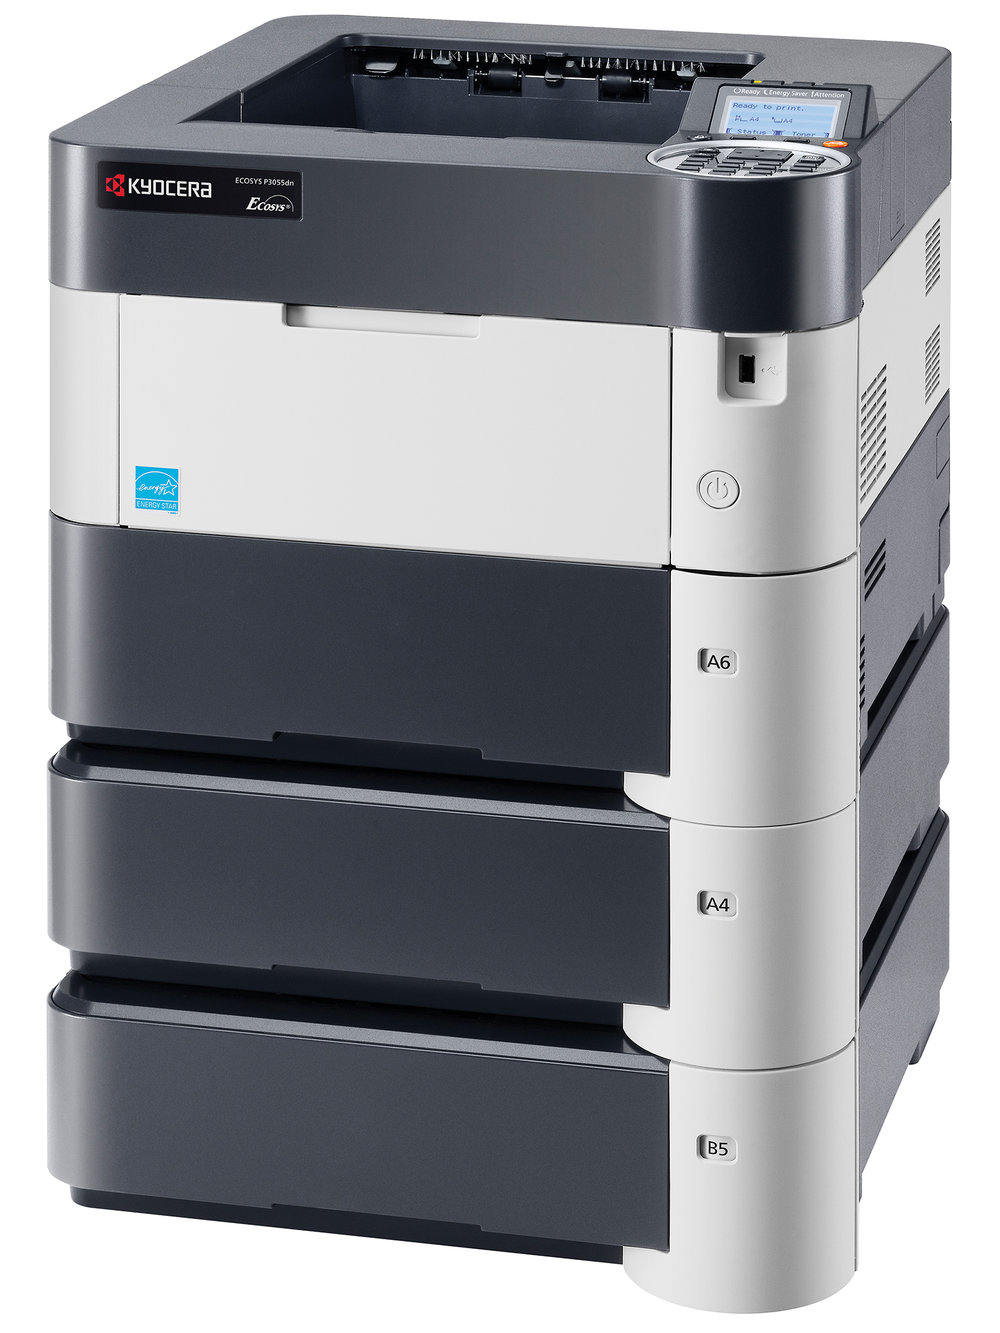 The Ecosys P3055dn with x 2 optional cassettes